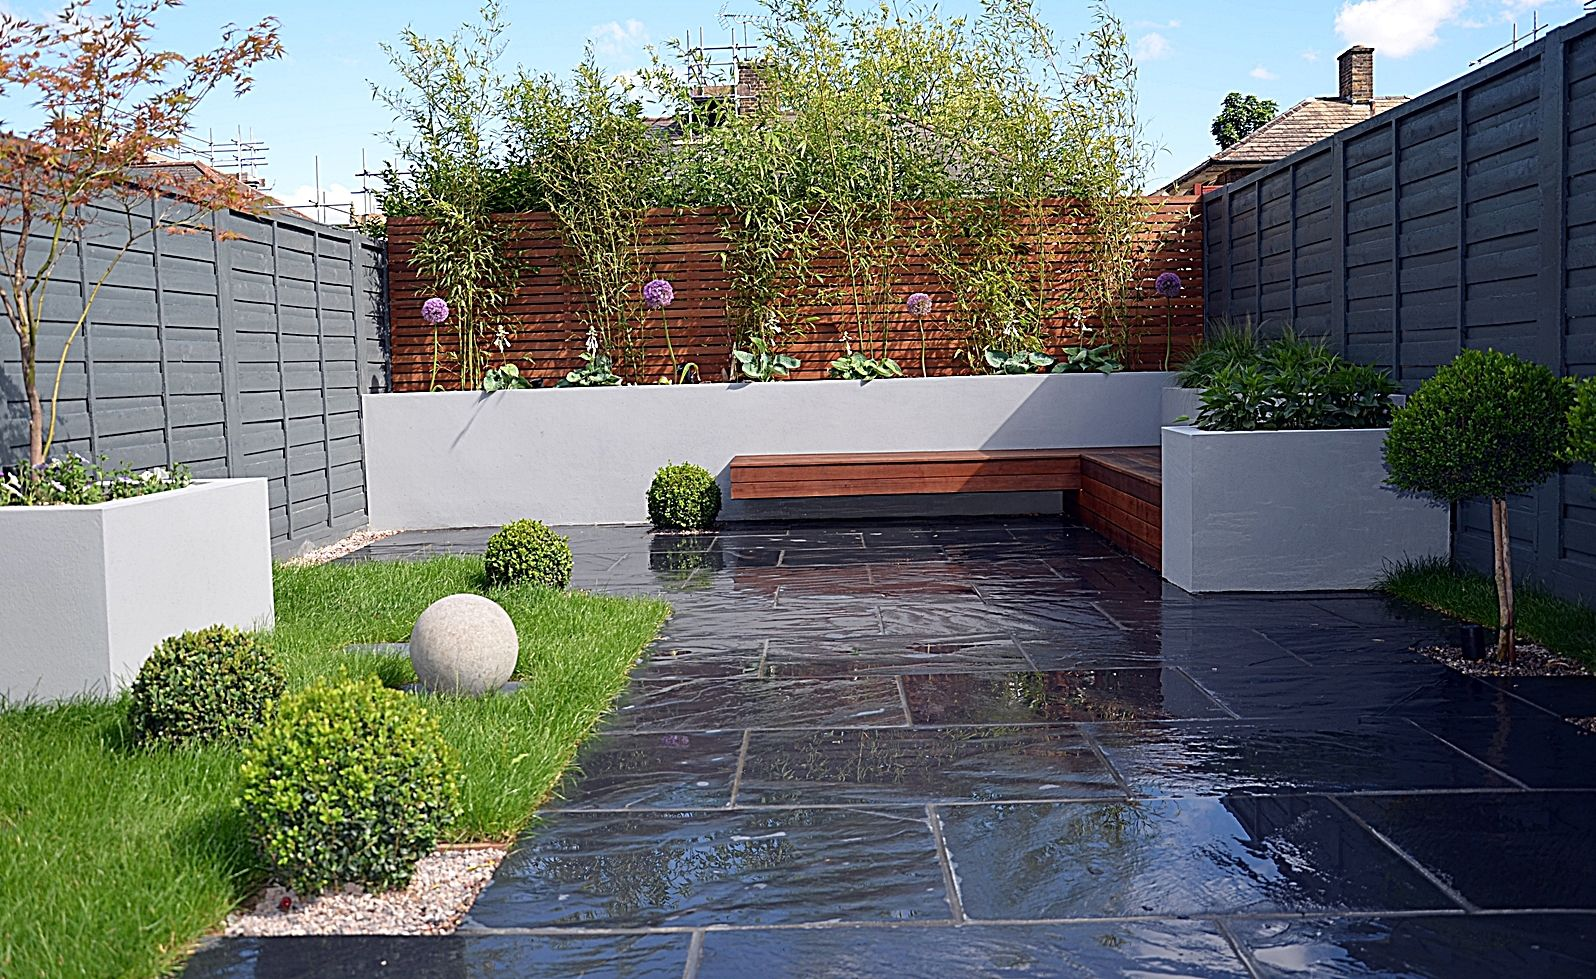 Raised Beds Architectural Planting Ornamental Lawn